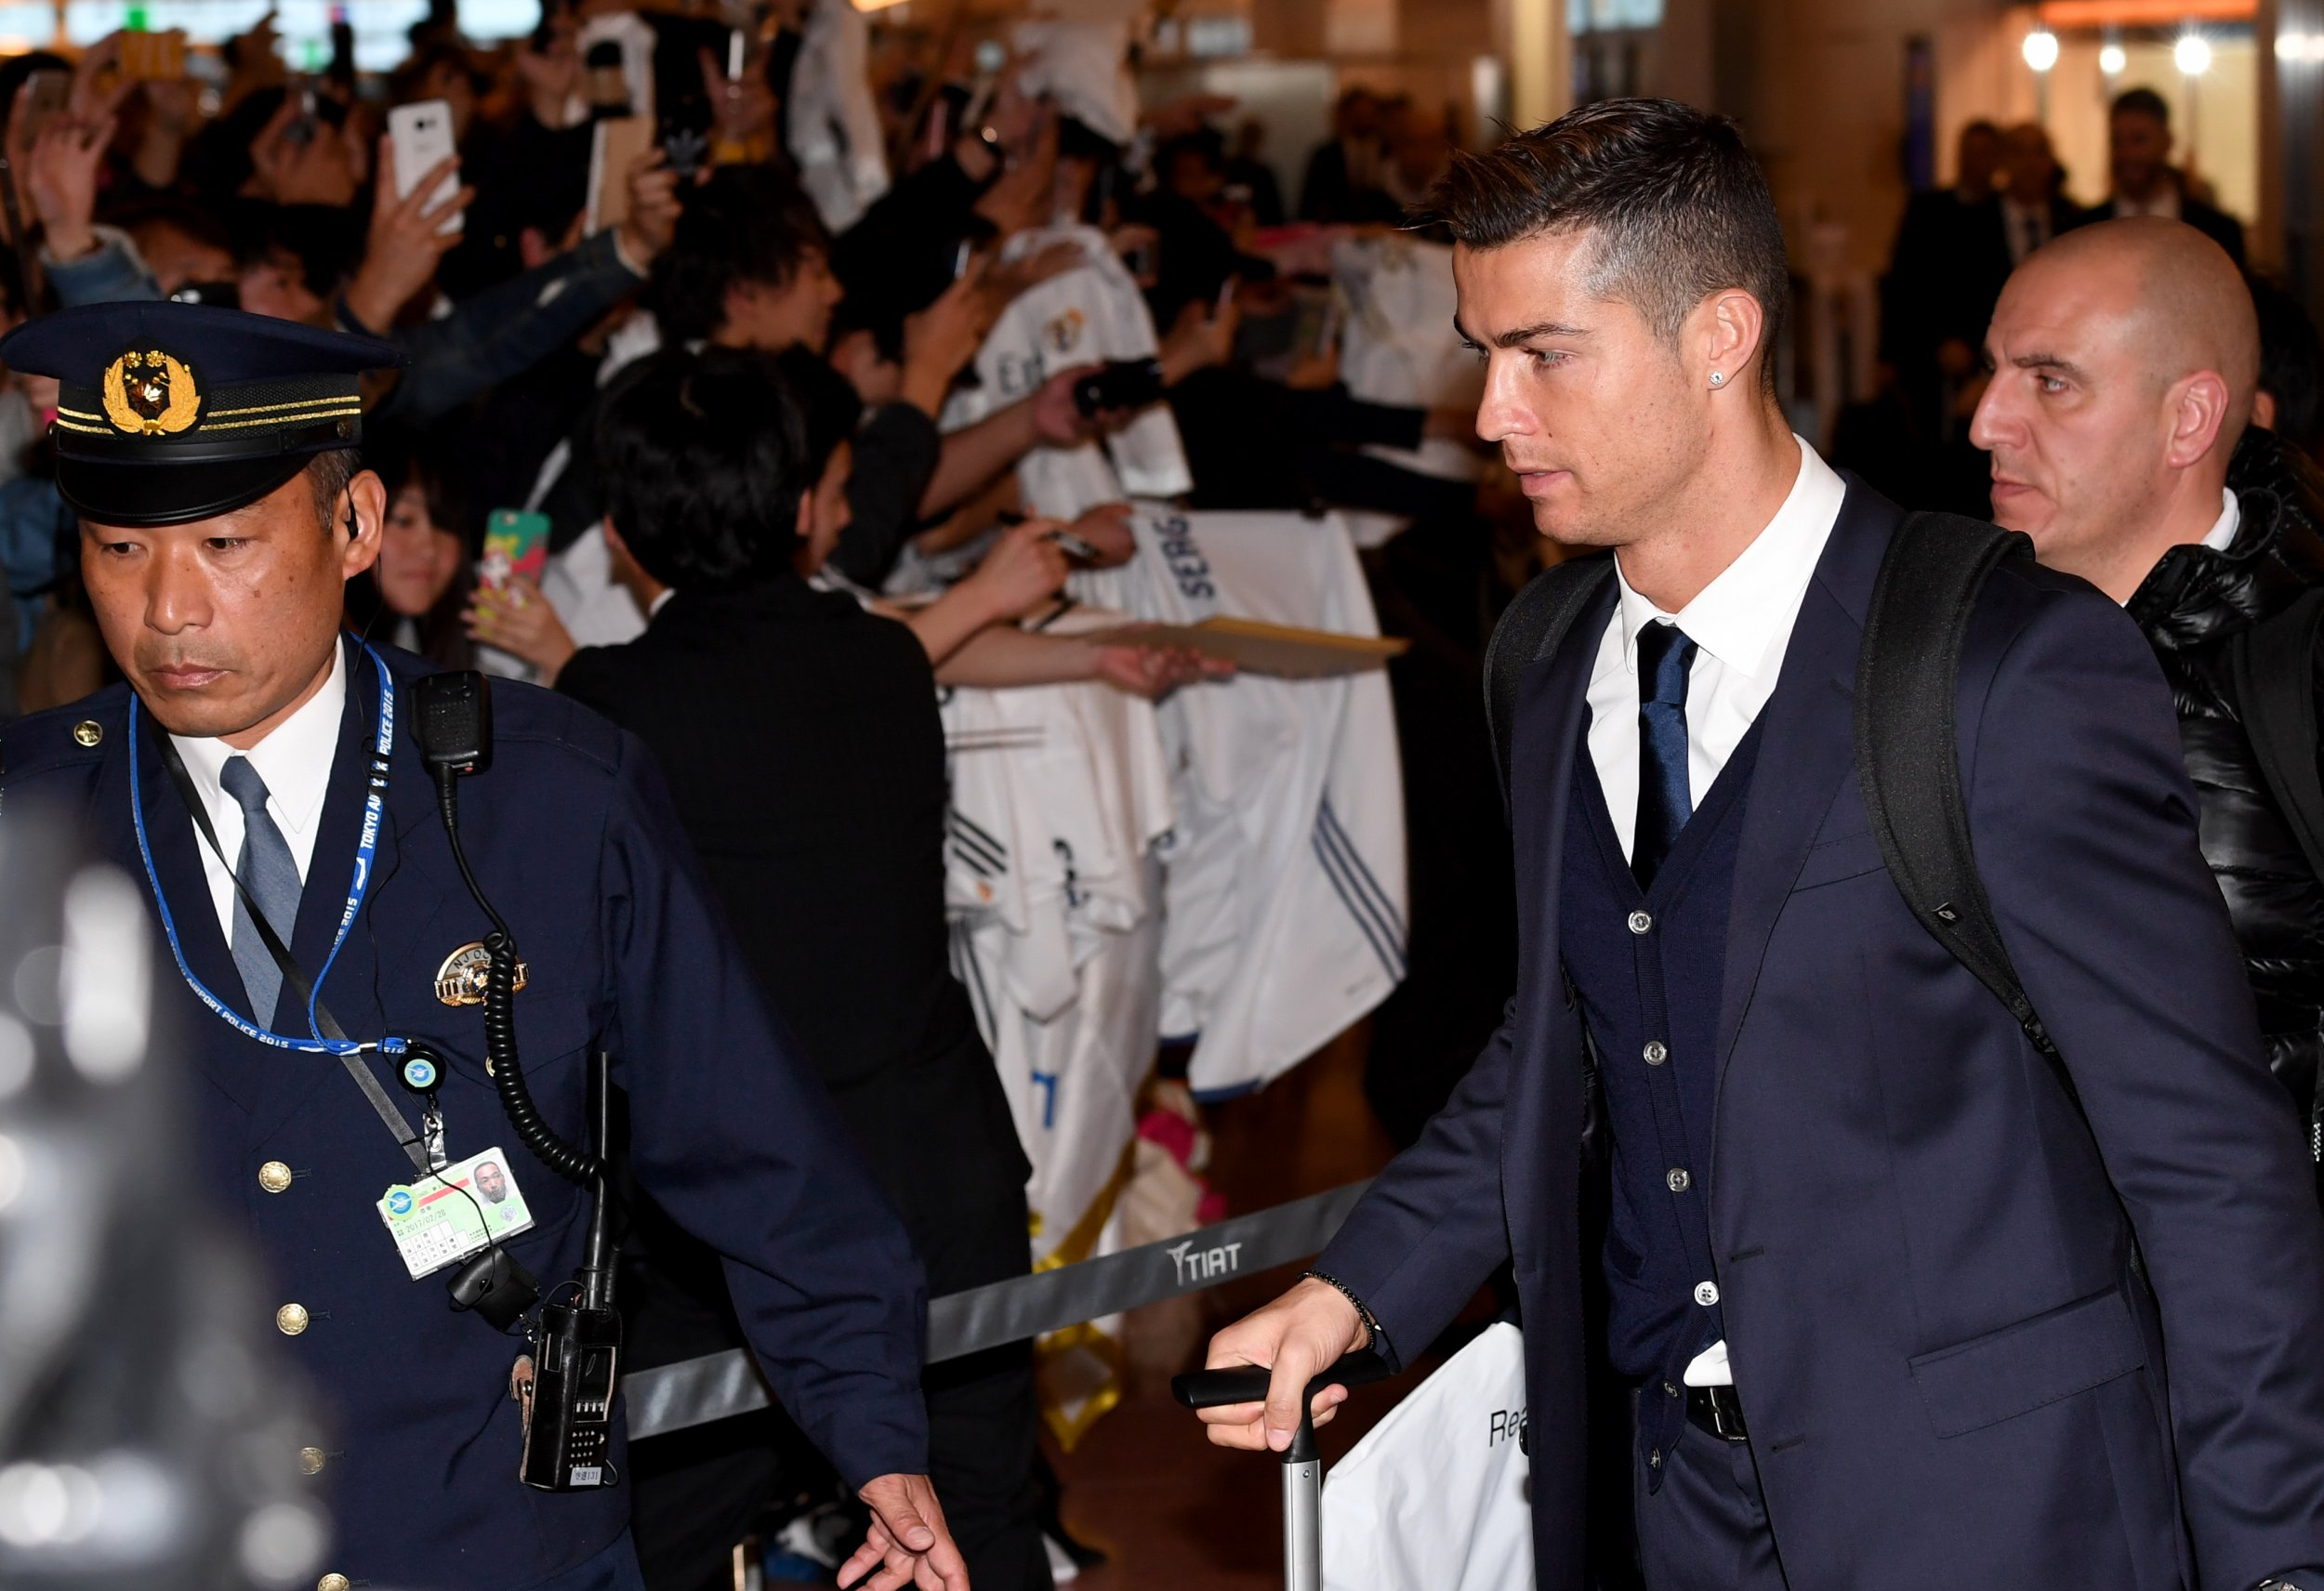 Real Madrid star Cristiano Ronaldo, right, at the Haneda International Airport, Tokyo.